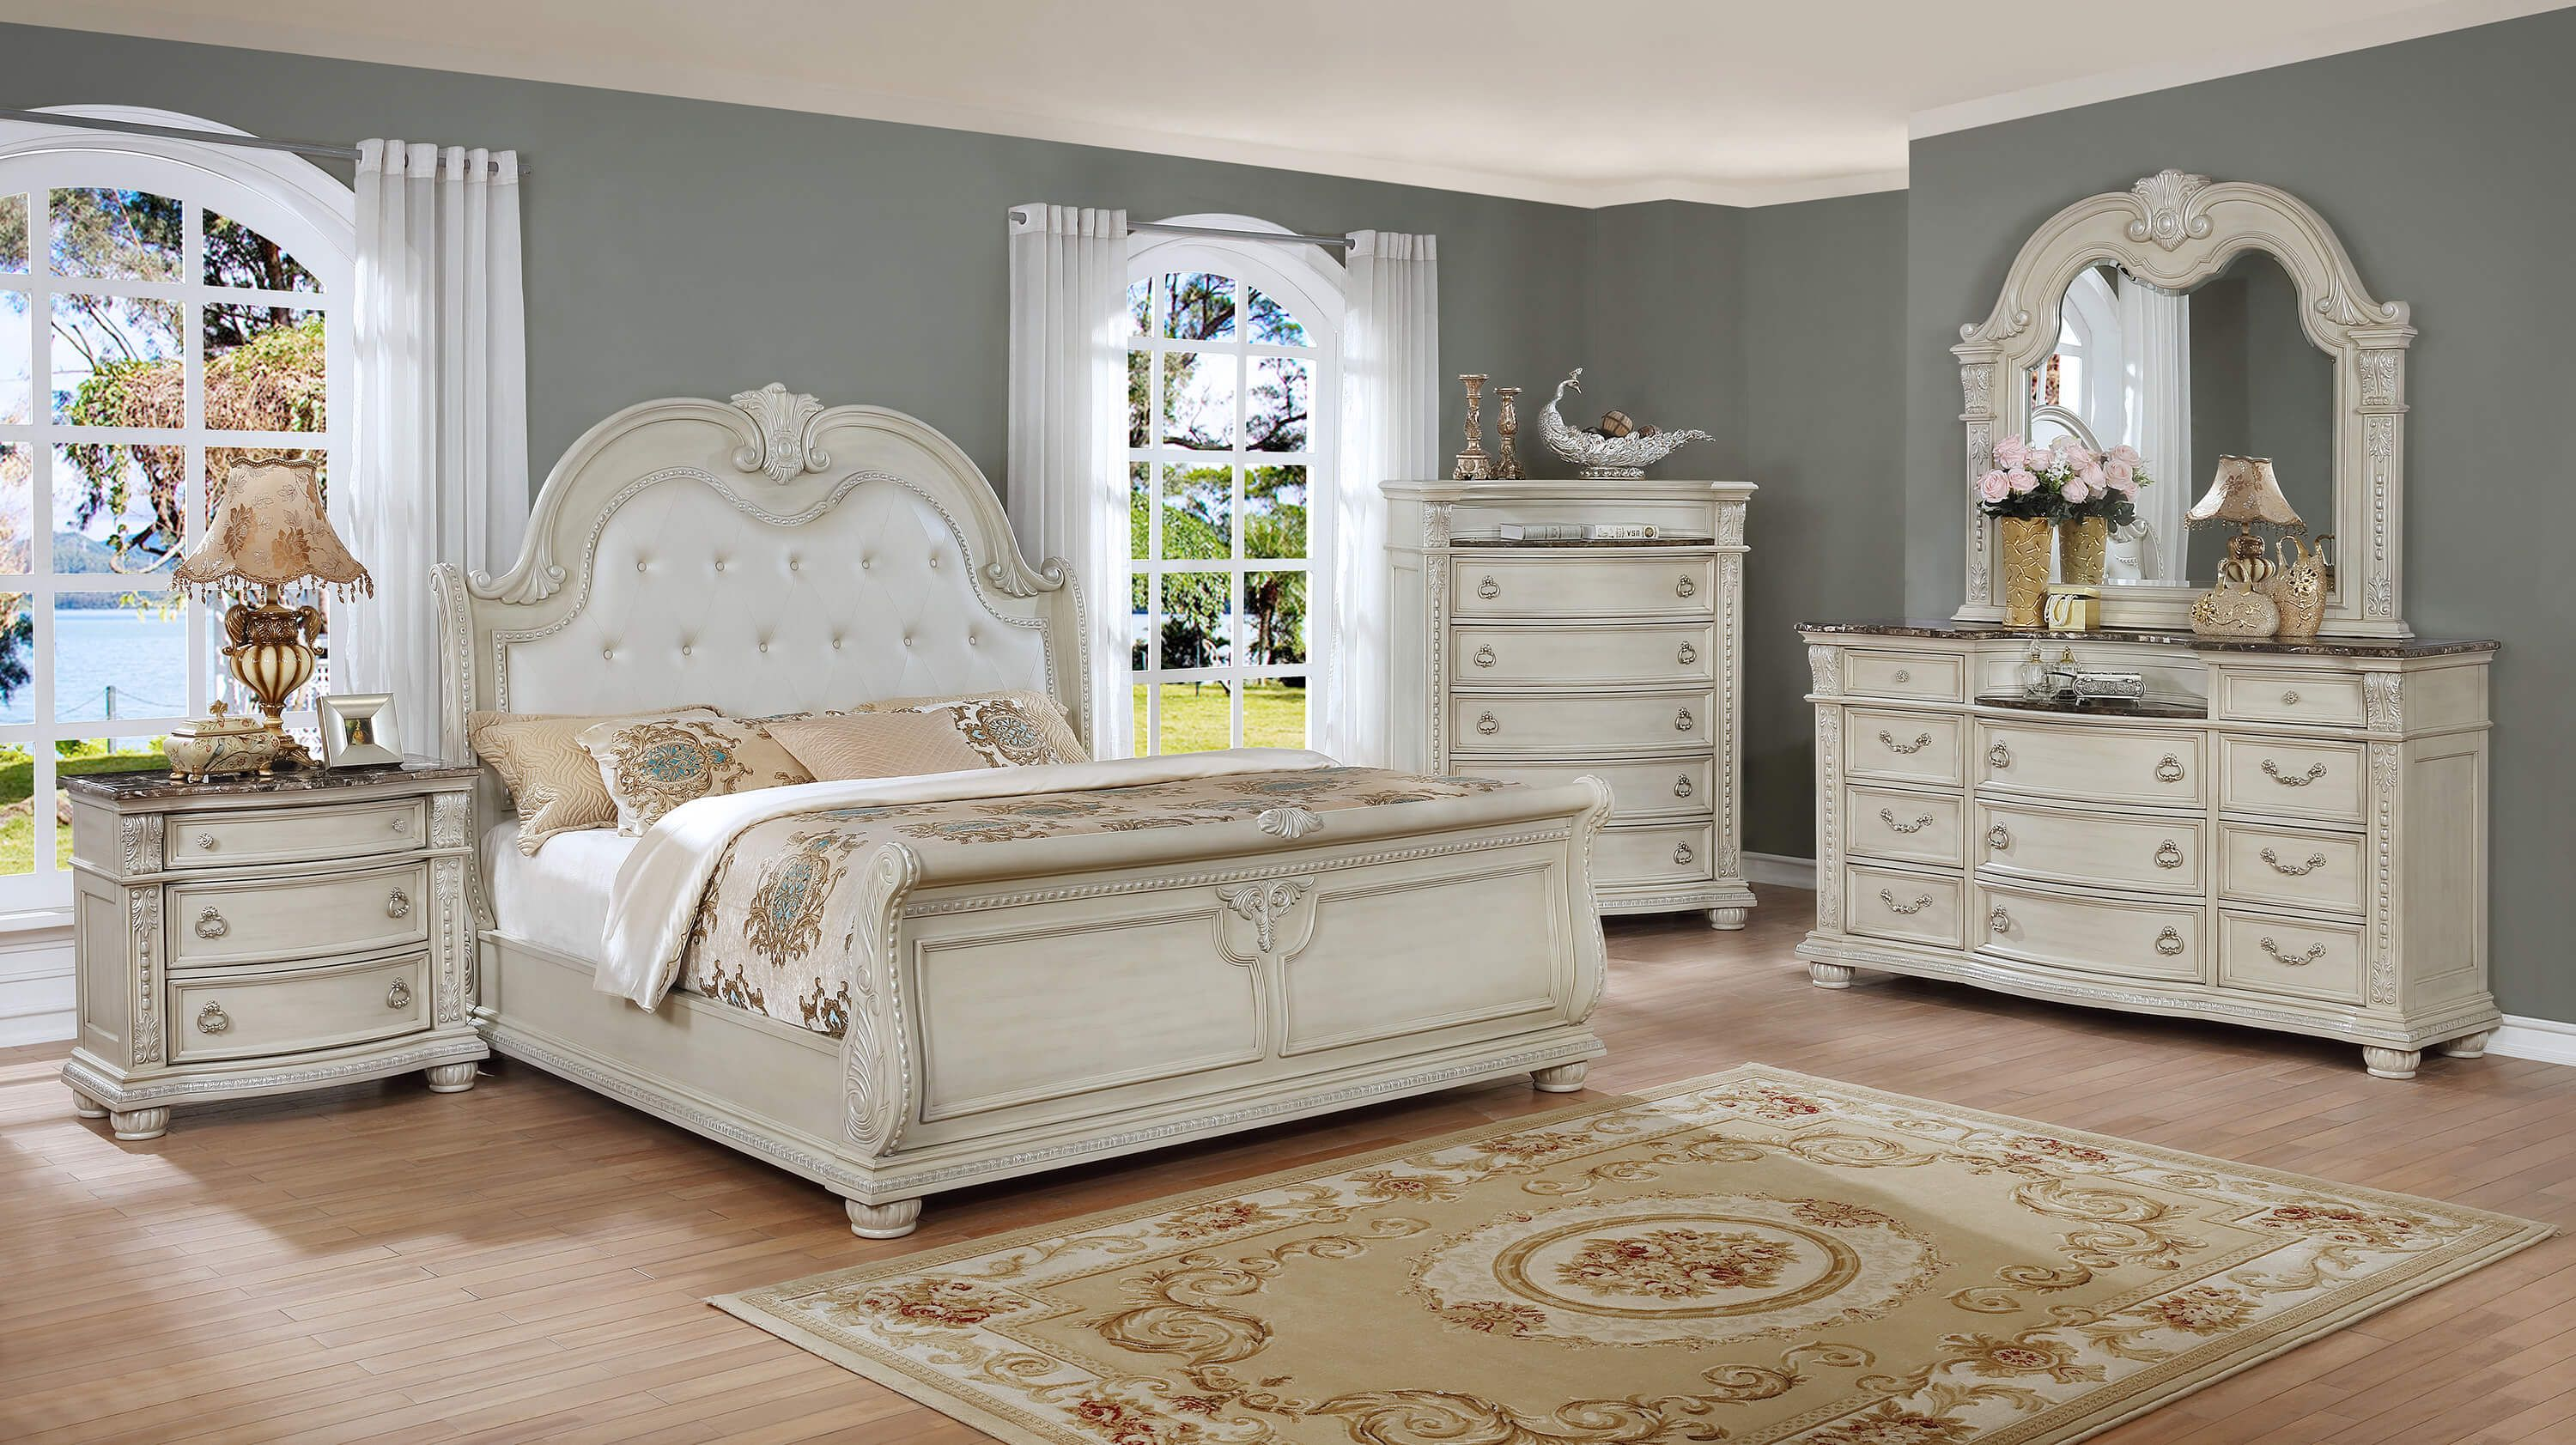 Best White Bedroom Furniture For Sale Near Me In 2020 White 400 x 300